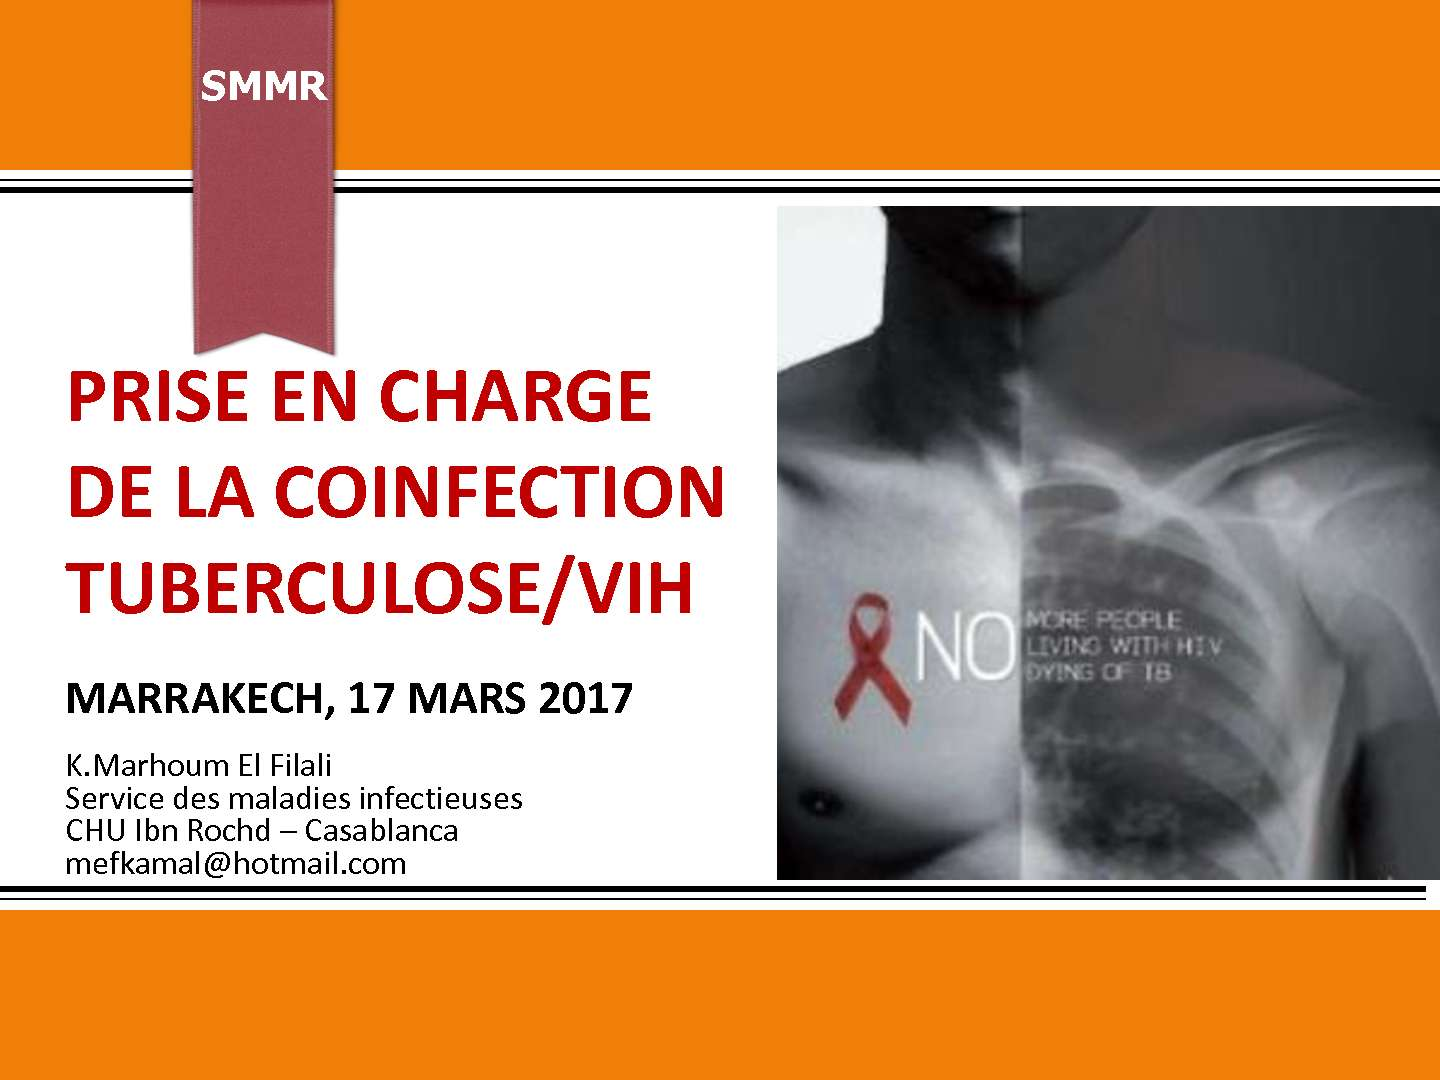 Prise en charge de la co-infection VIH-tuberculose. K. MARHOUM FILALI (Casablanca)